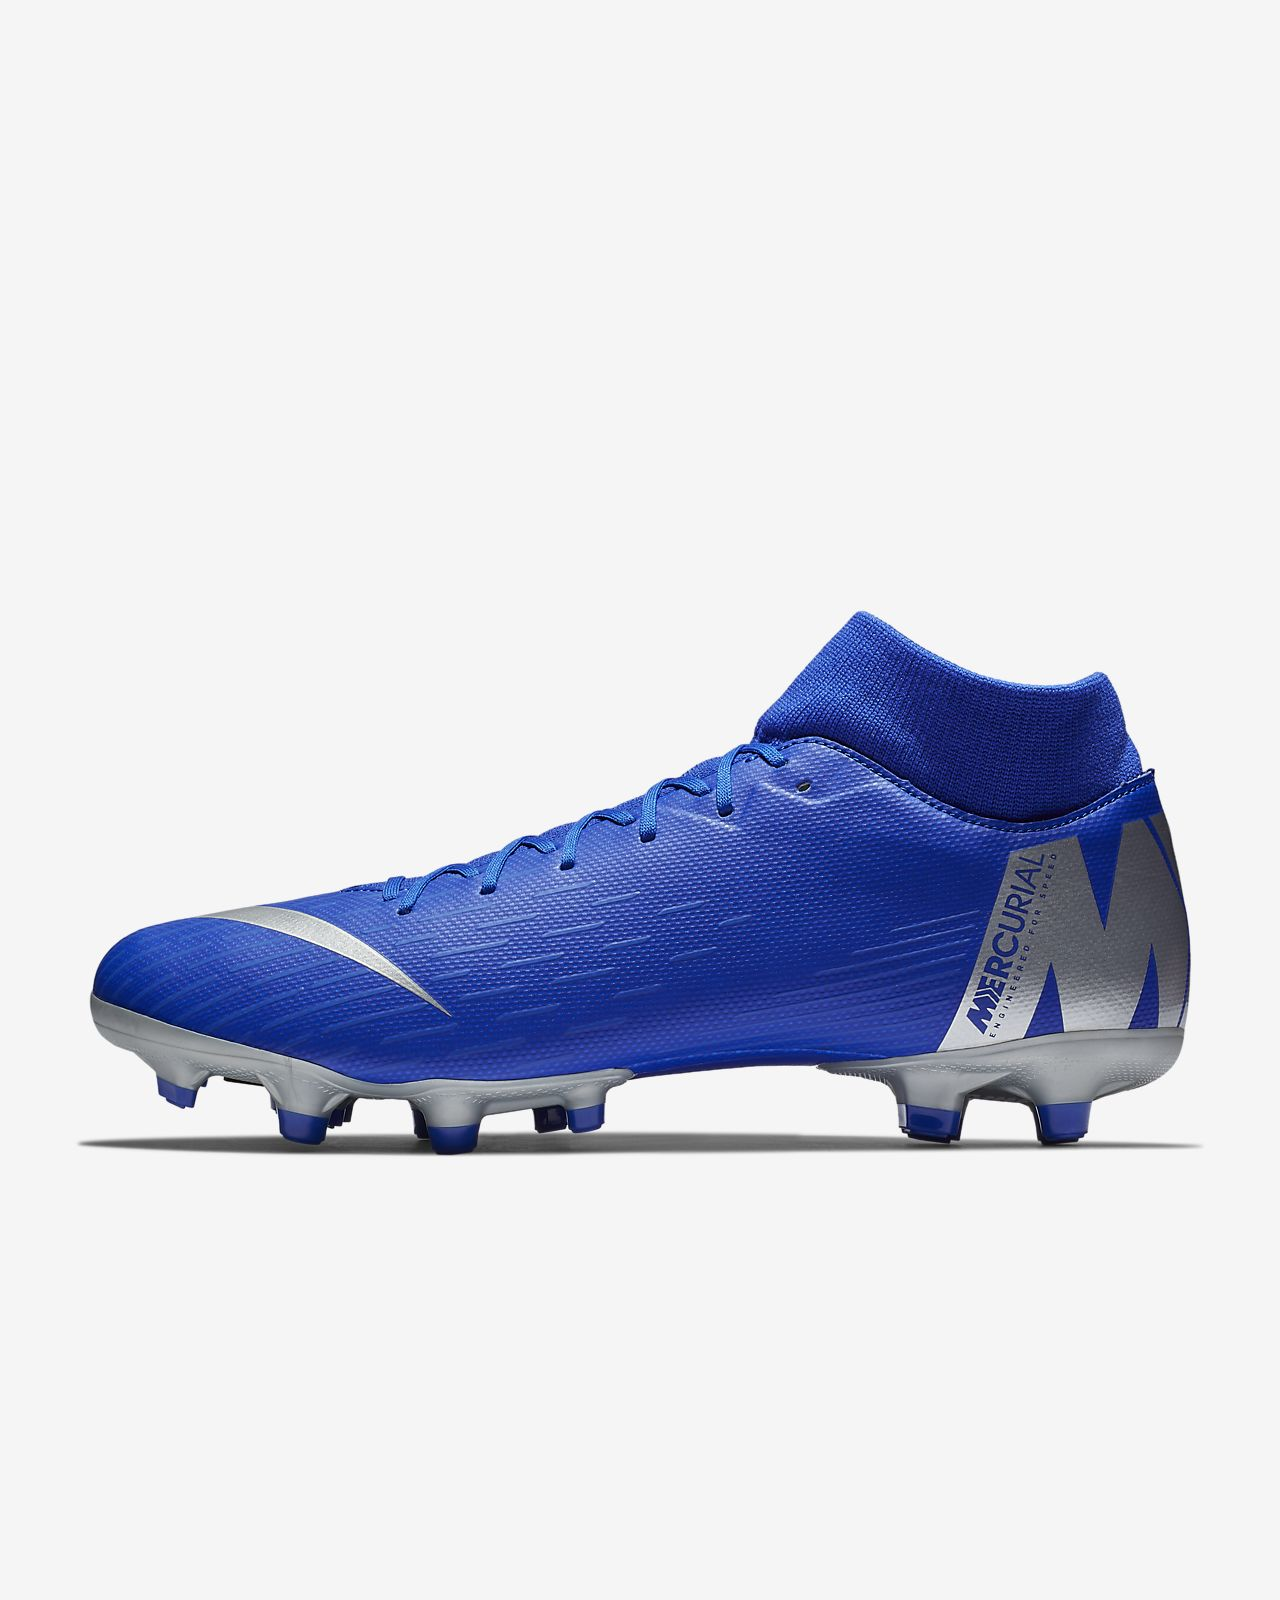 promo code d9459 f5687 ... Chaussure de football multi-terrains à crampons Nike Mercurial Superfly  6 Academy MG